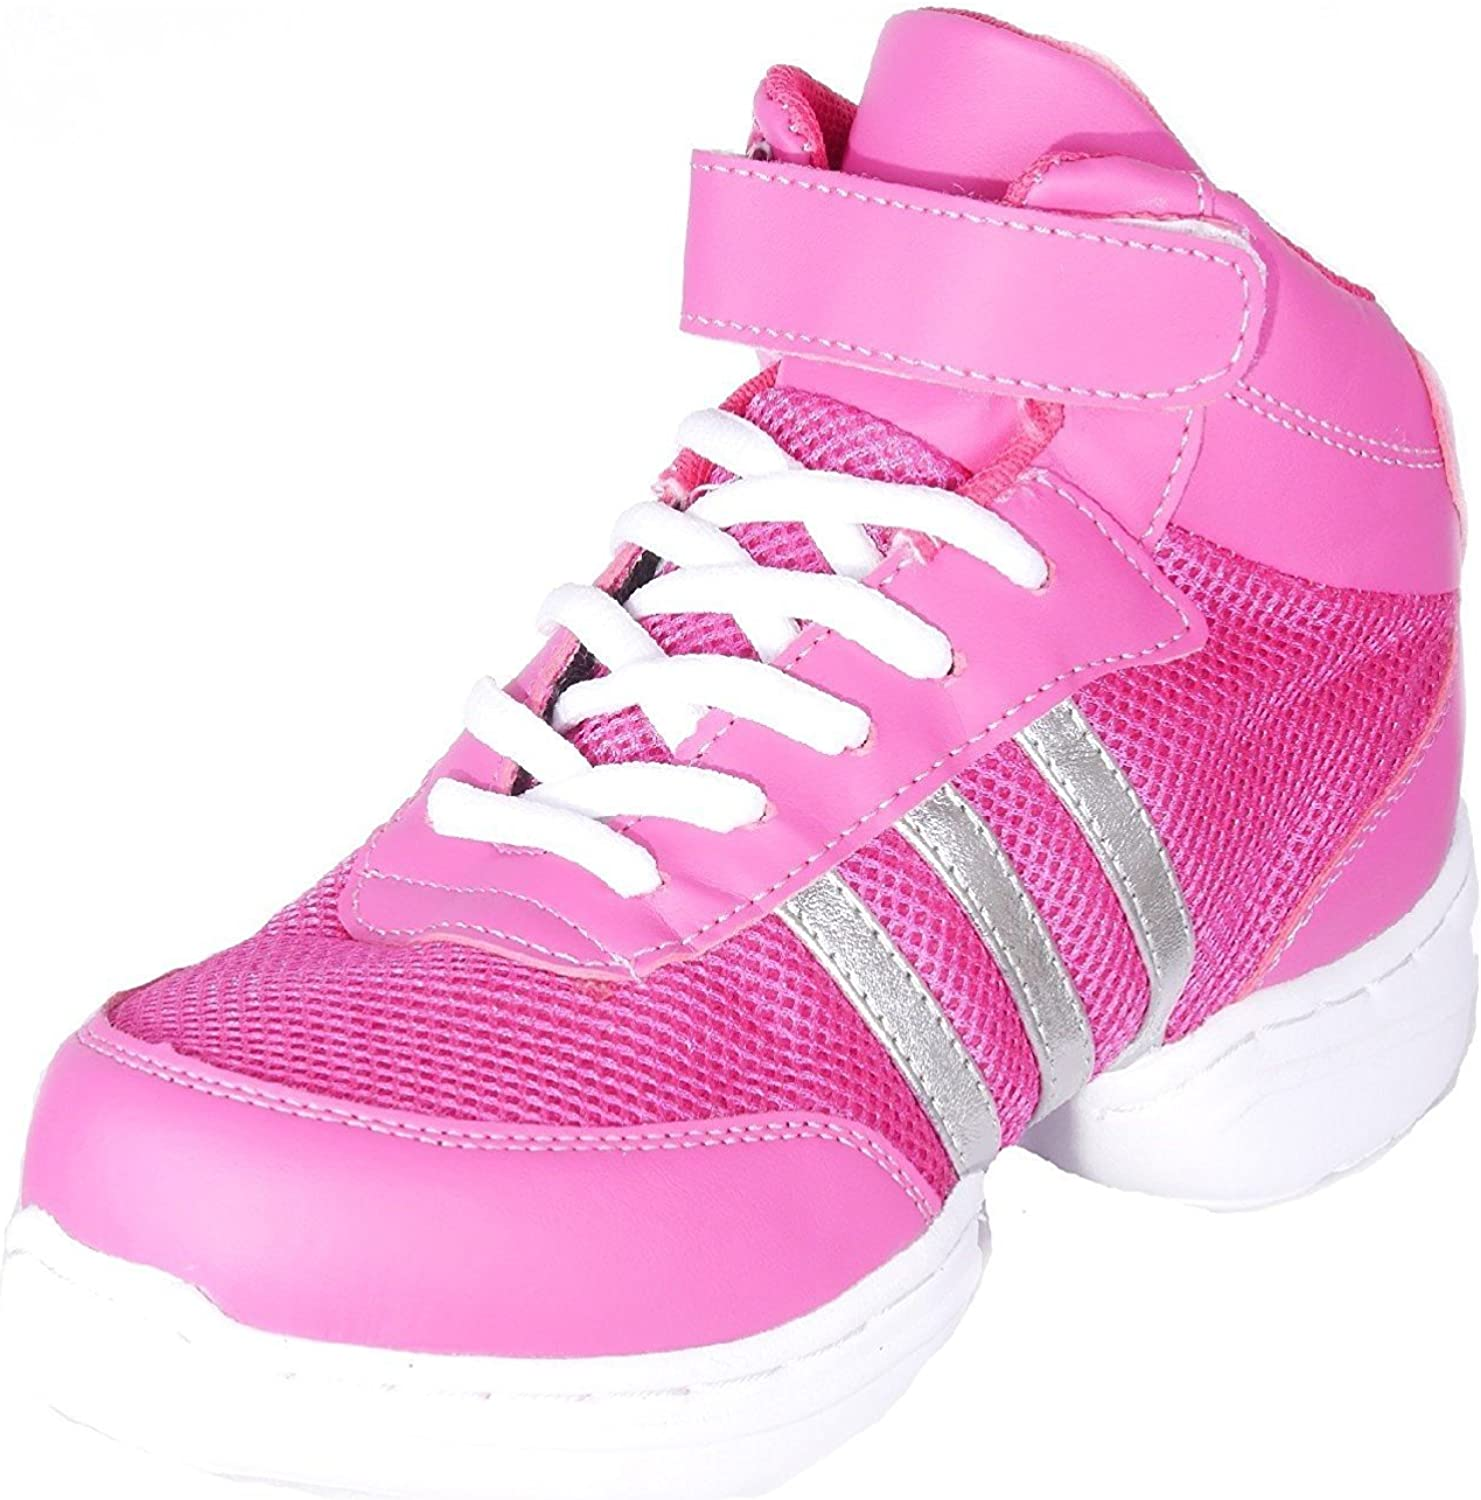 Dance Fitness Shoes High Top Sneakers